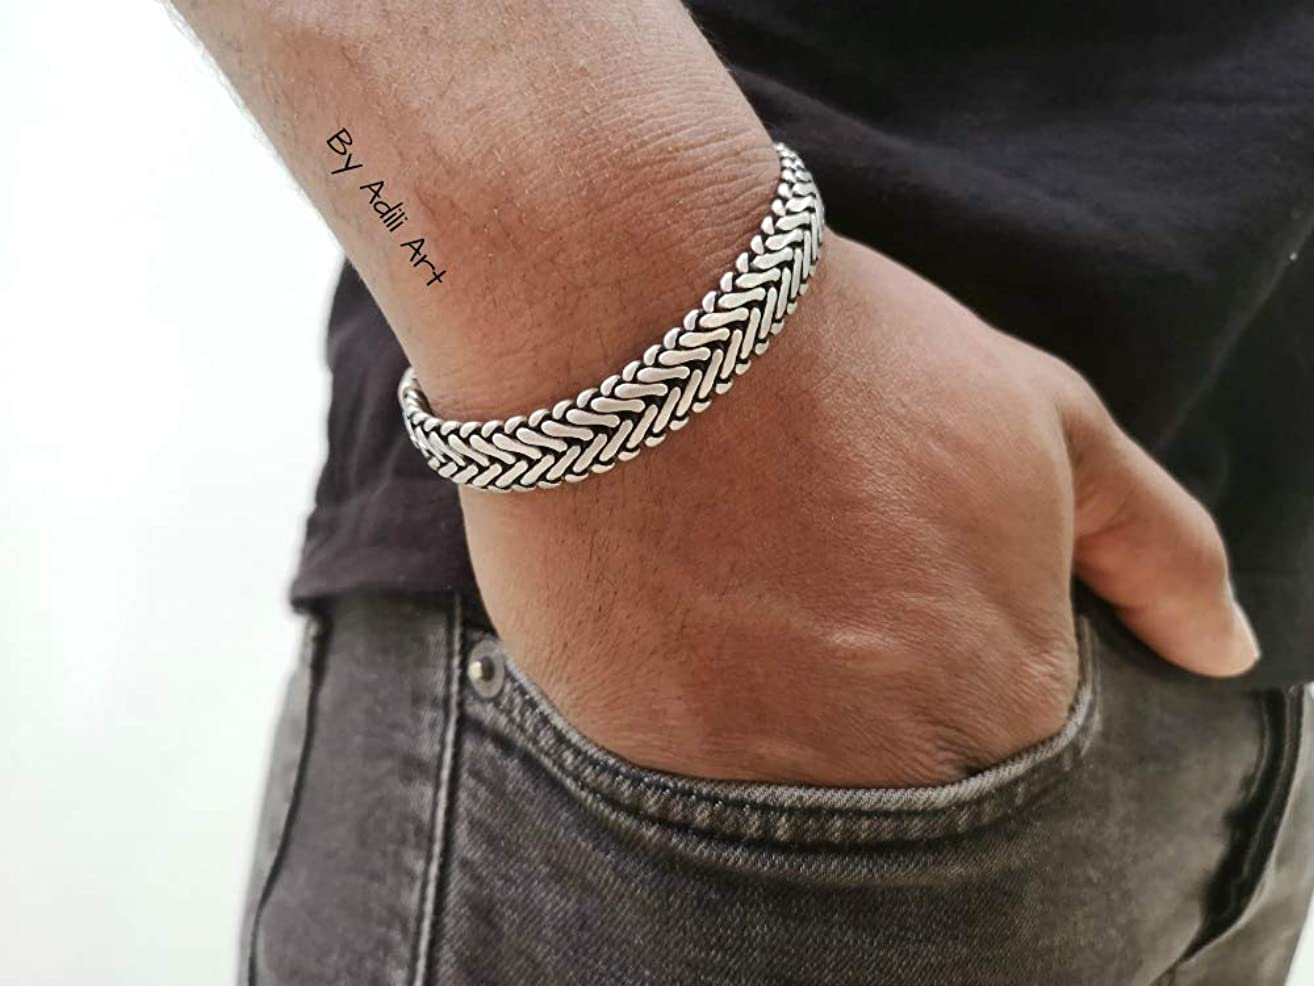 925 Silver Plated Men's Bold Chain Bracelet (for wrist size approx 8.5